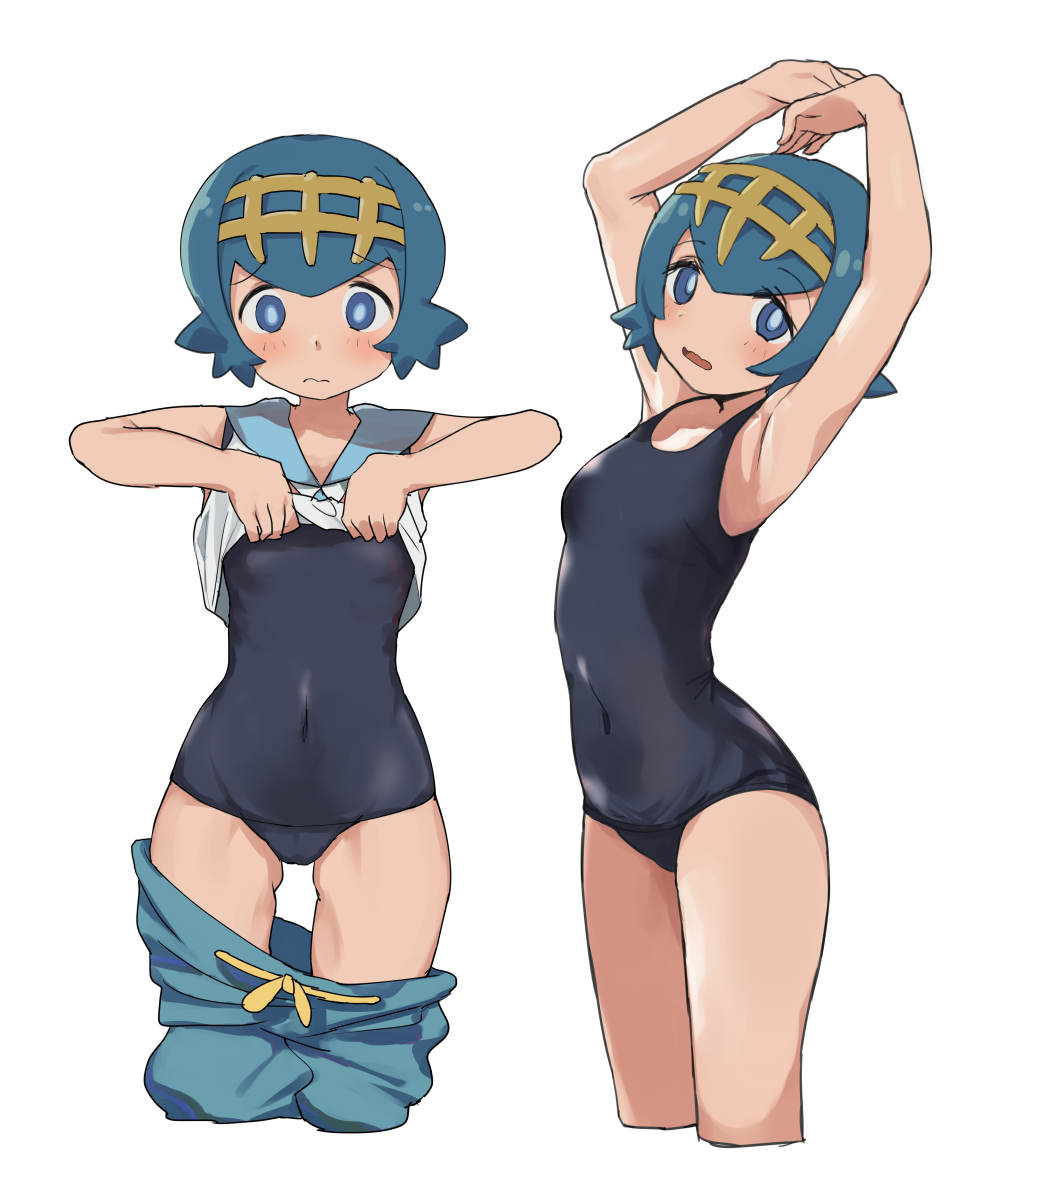 armpits arms_up blue_eyes blue_hair blush covered_navel hairband highres lifted_by_self looking_at_viewer niizuka_(c-drop) one-piece_swimsuit open_mouth pokemon pokemon_(game) pokemon_sm shirt_lift short_hair shorts shorts_pull suiren_(pokemon) swimsuit trial_captain wavy_mouth